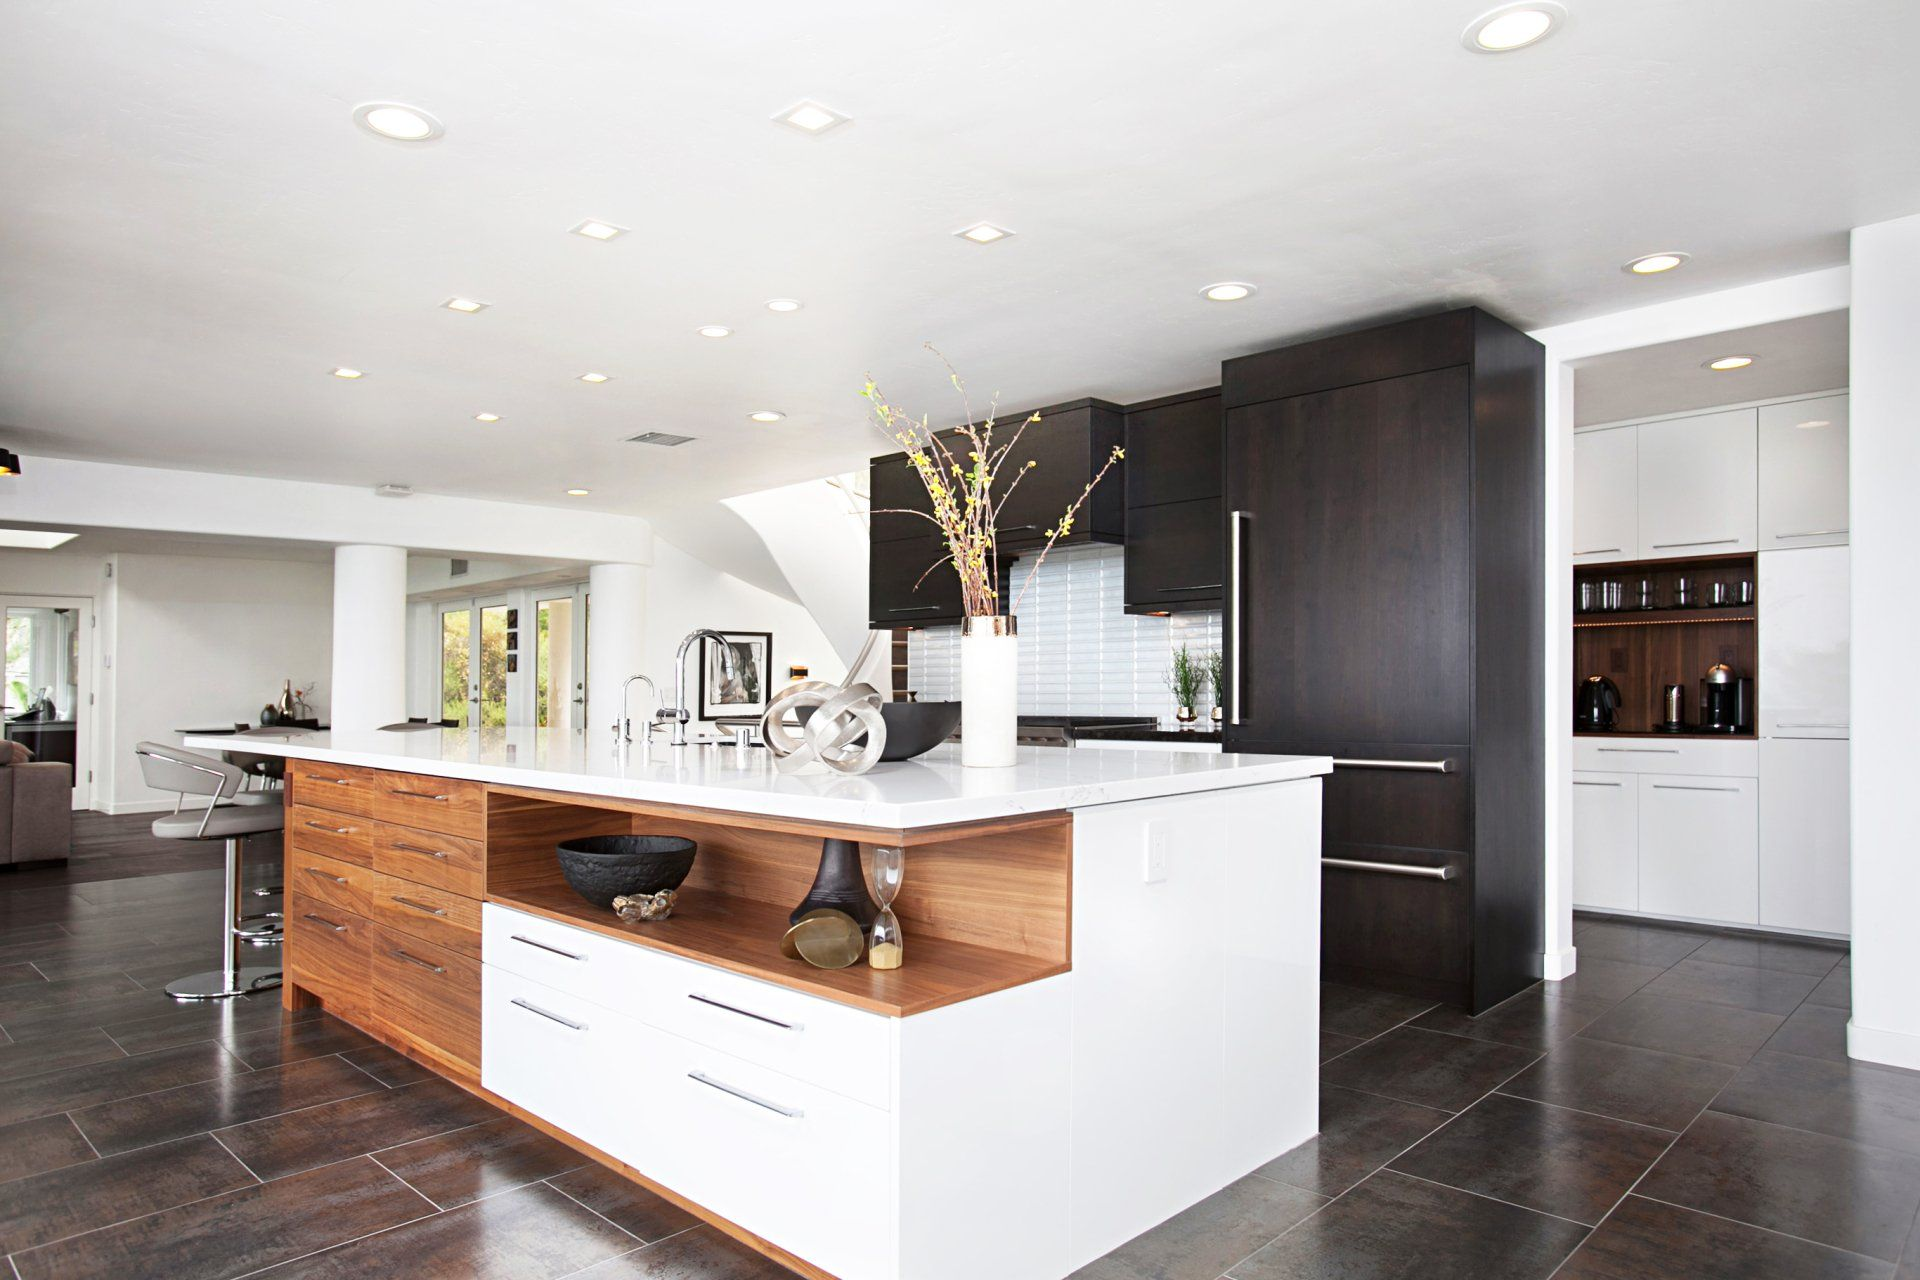 legacy brings both quality and style together we help homeowners build or remodel their on kitchen cabinets modern contemporary id=12136